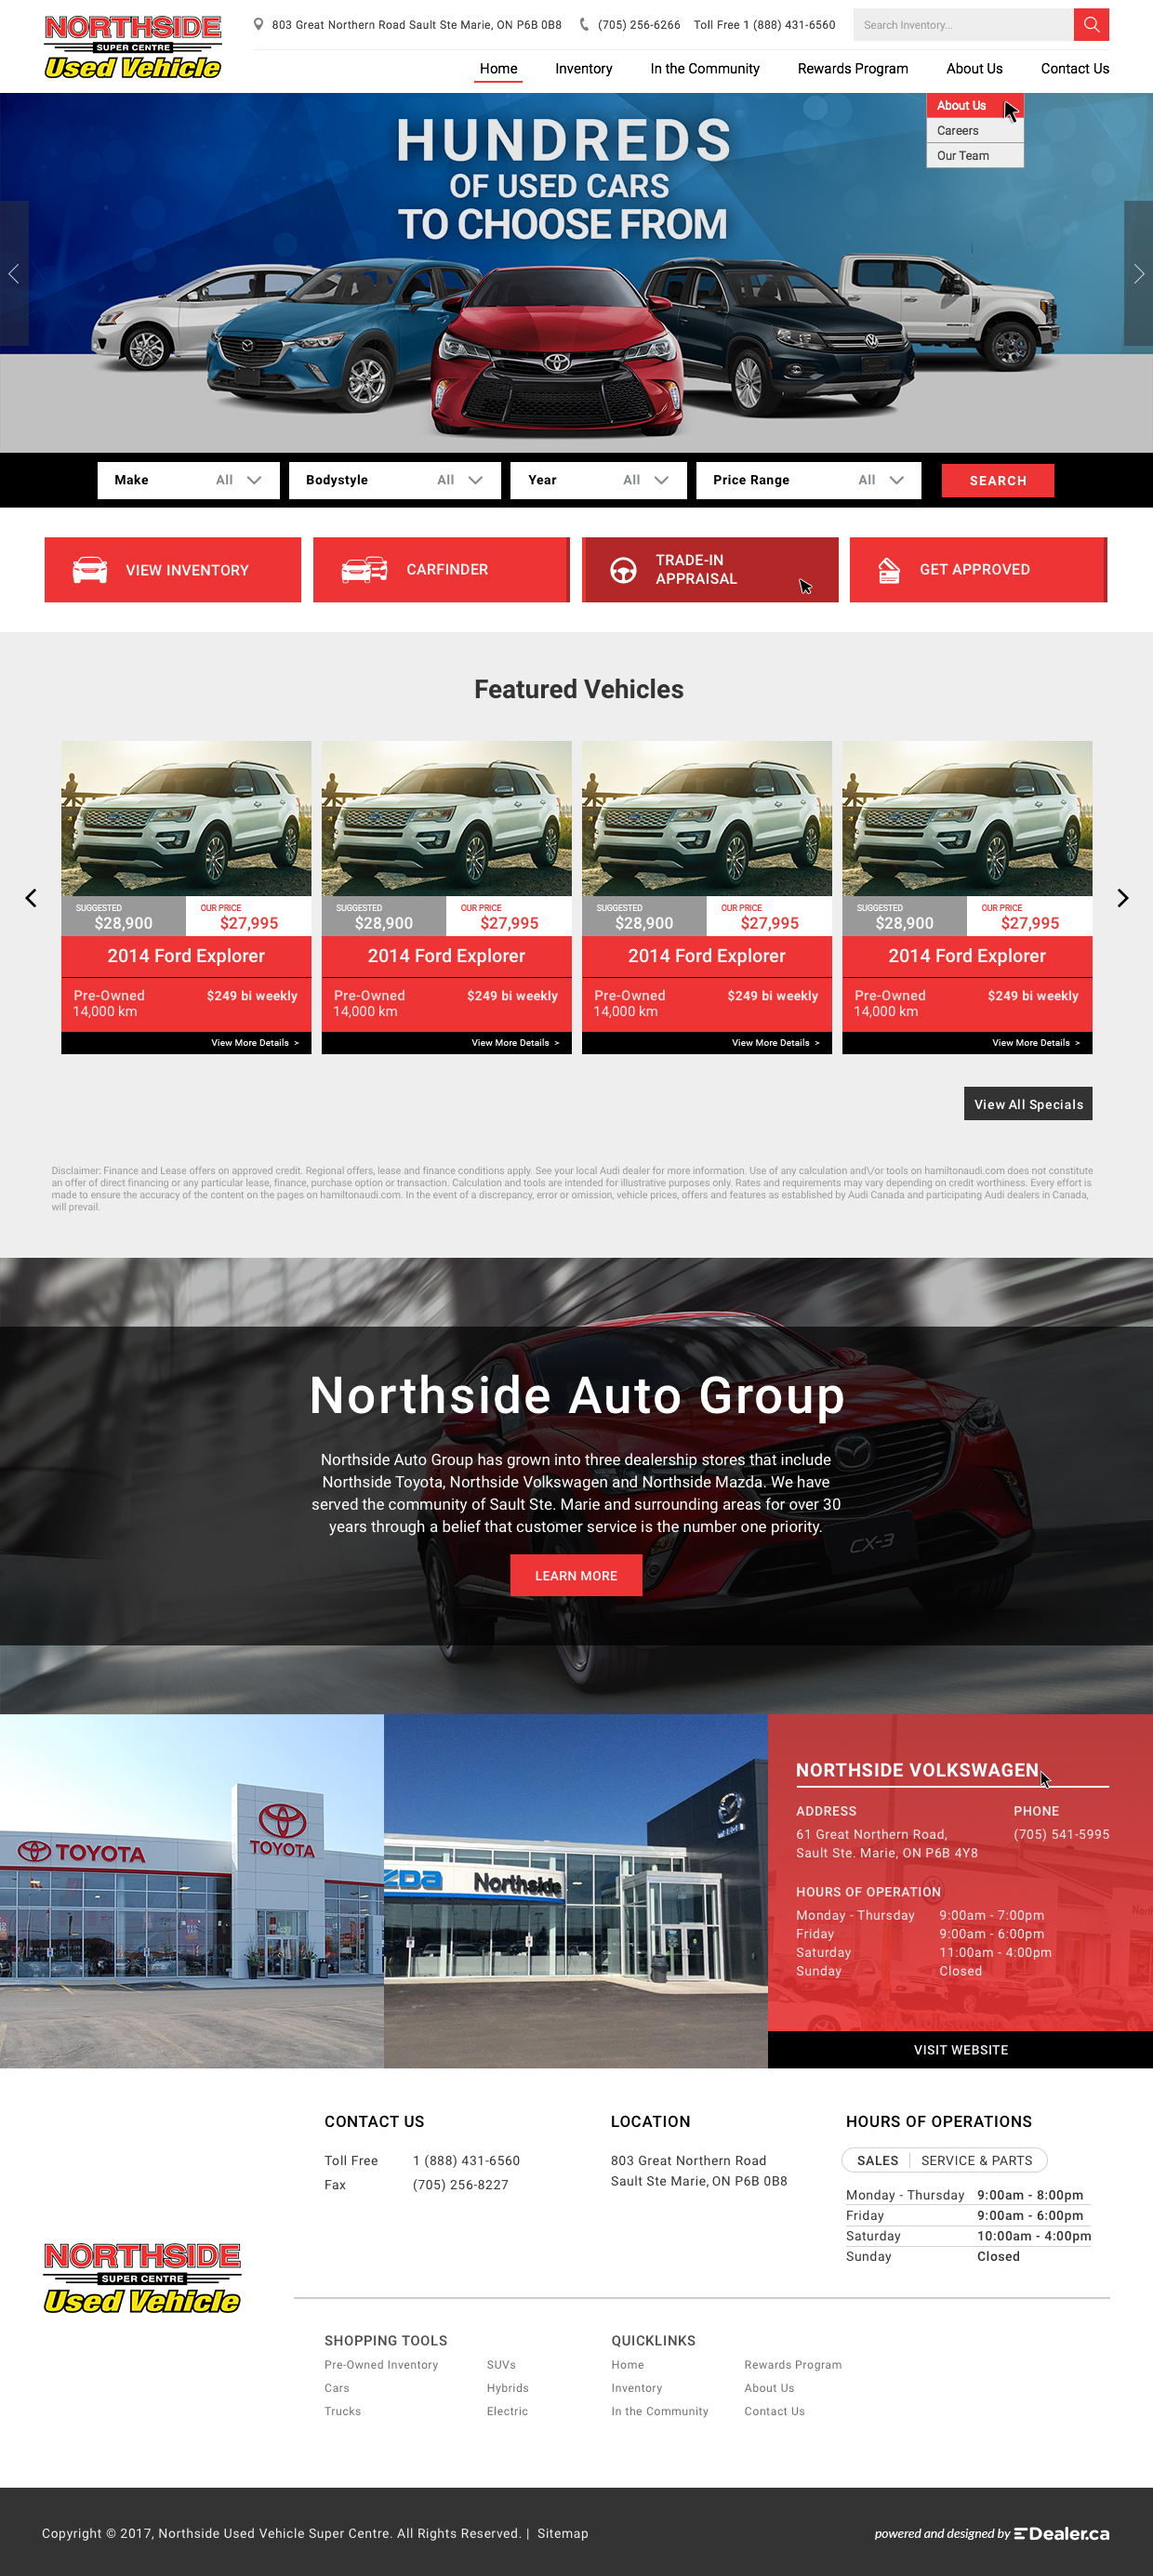 NorthsideUsedVehicleSuperCentre-1240px-final